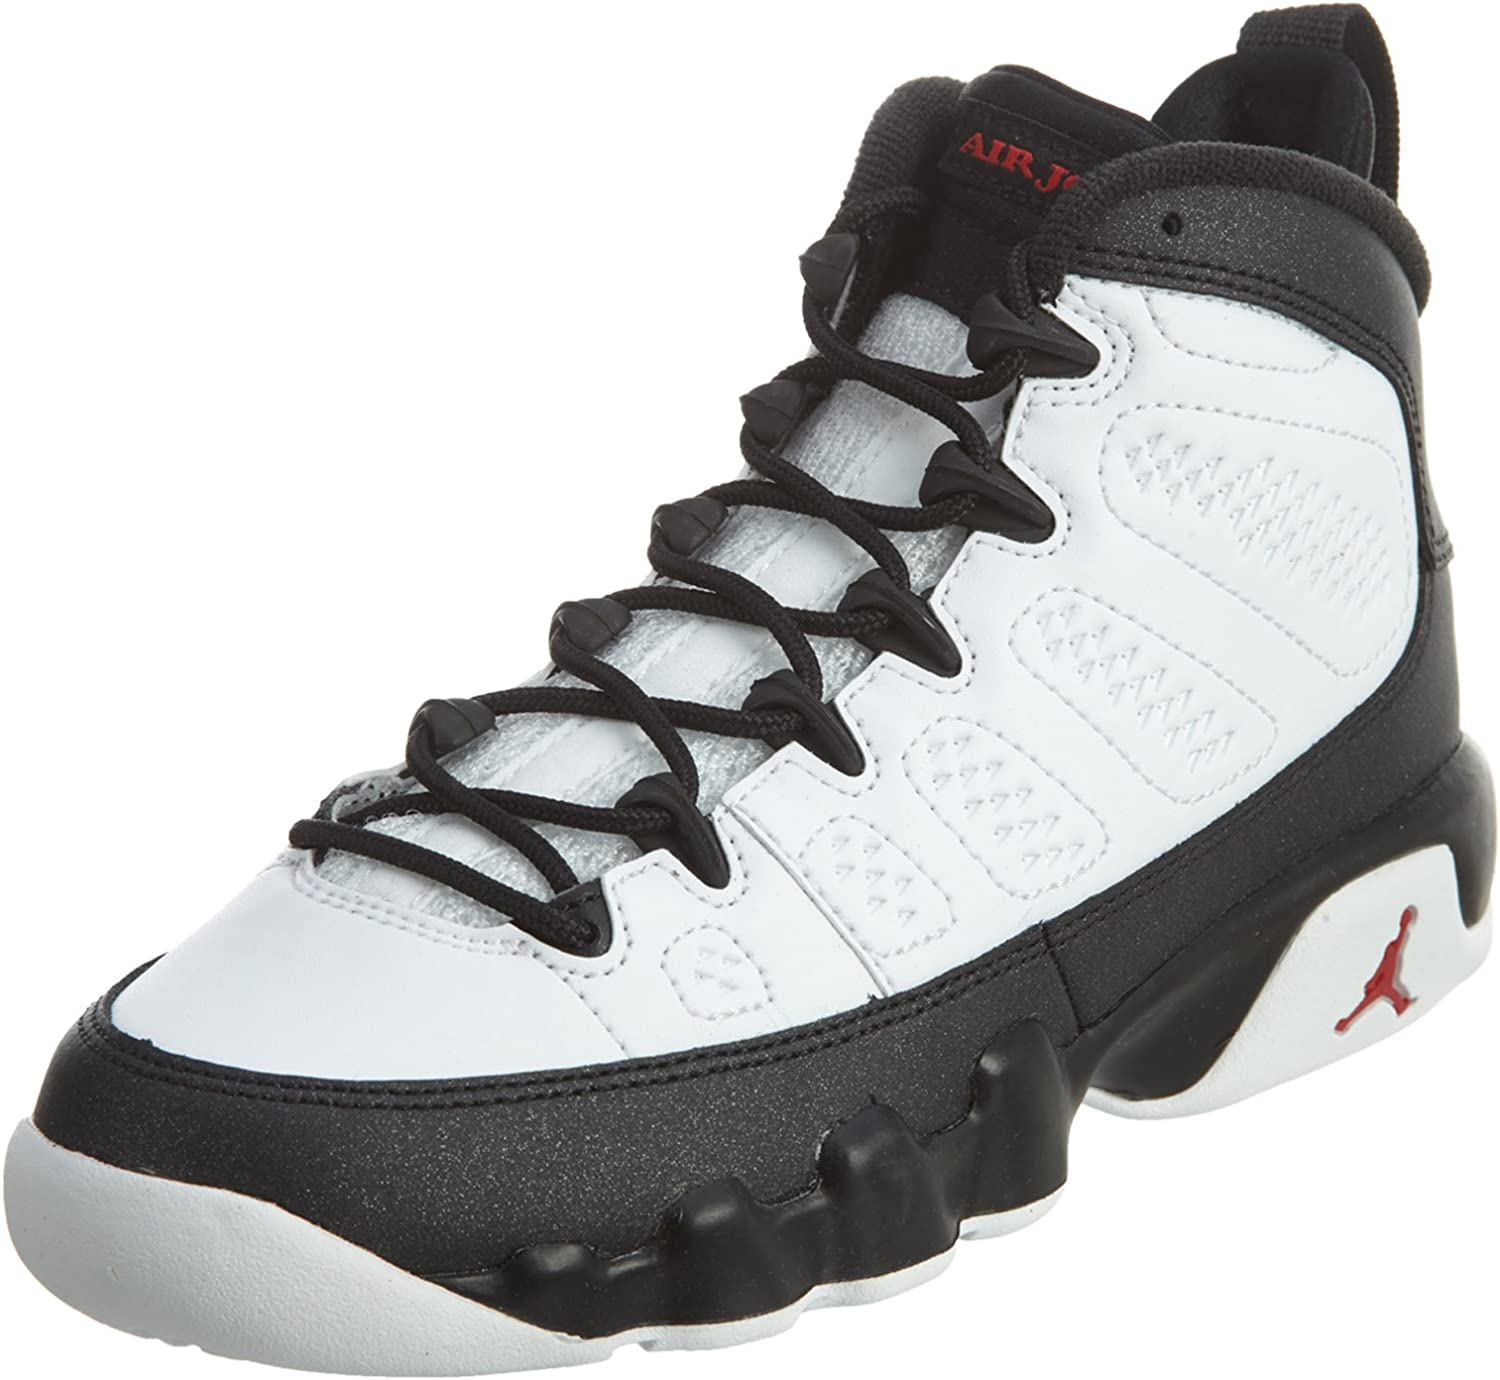 Viaje mayor testigo  Amazon.com | Nike Air Jordan 9 Retro BG Black & White Space Jam LTD RARITY  Basketball Shoes Sneaker black/white | Basketball